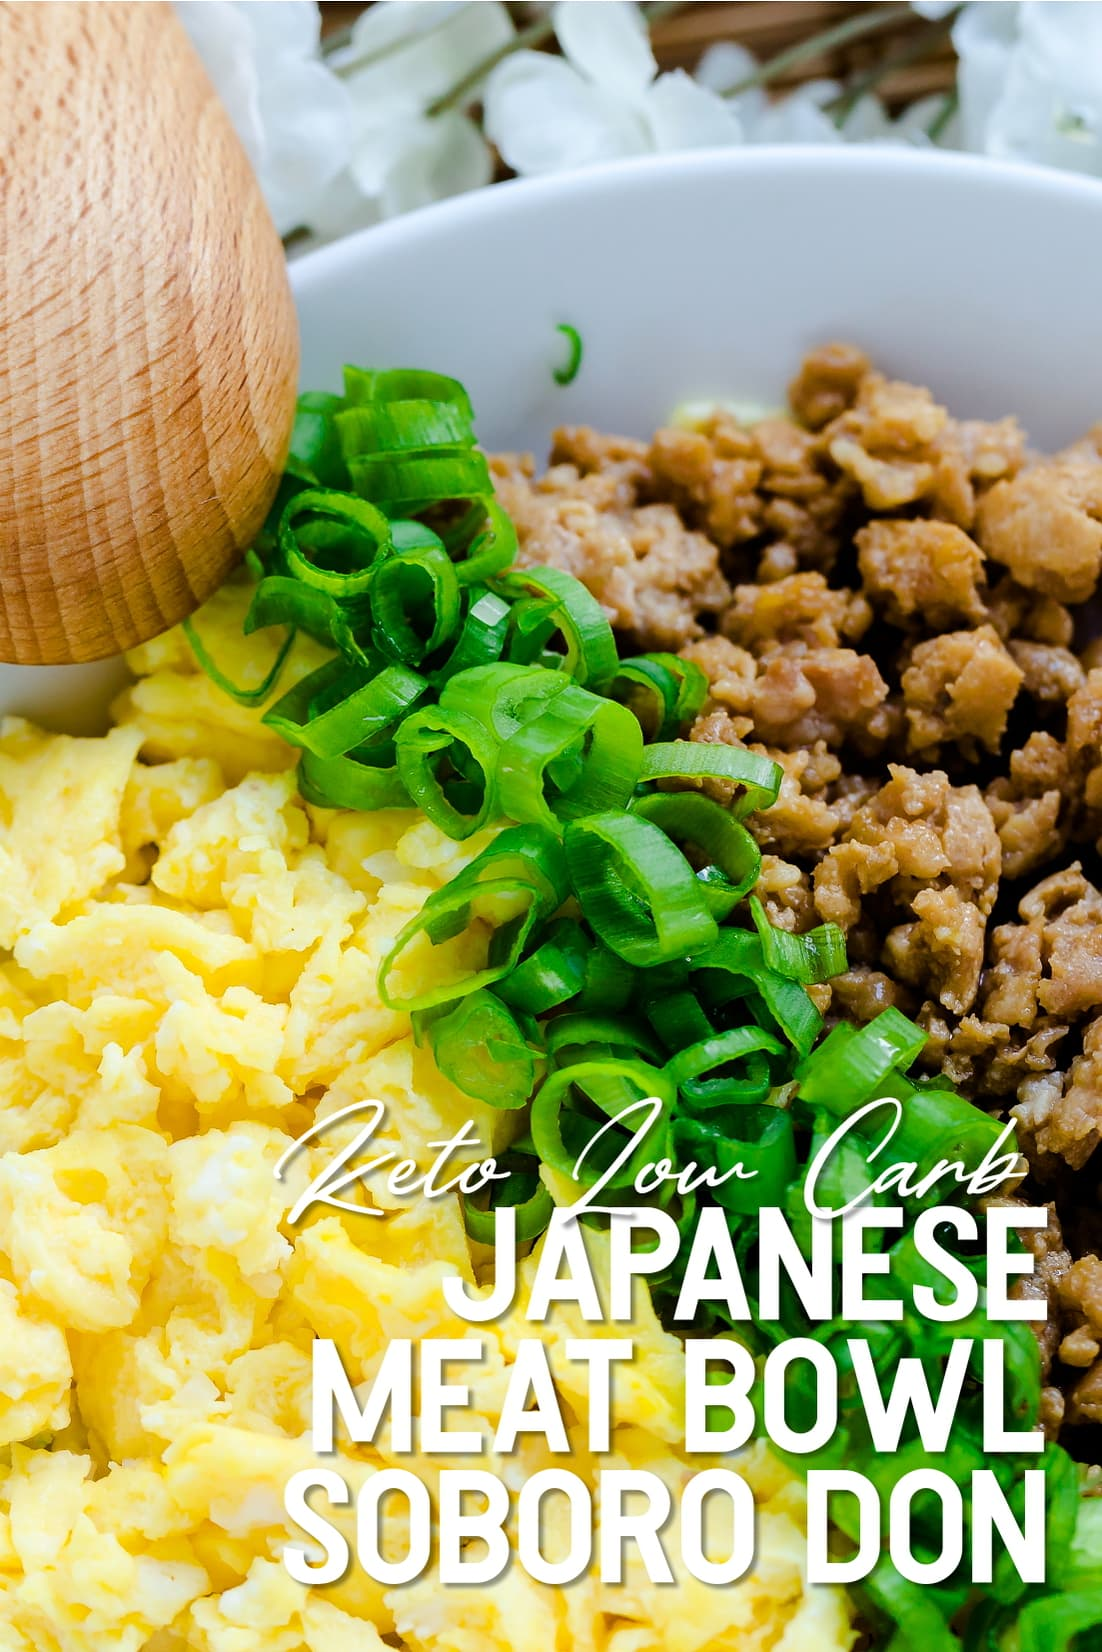 Japanese Ground Meat Chicken Soboro Don served in a white bowl